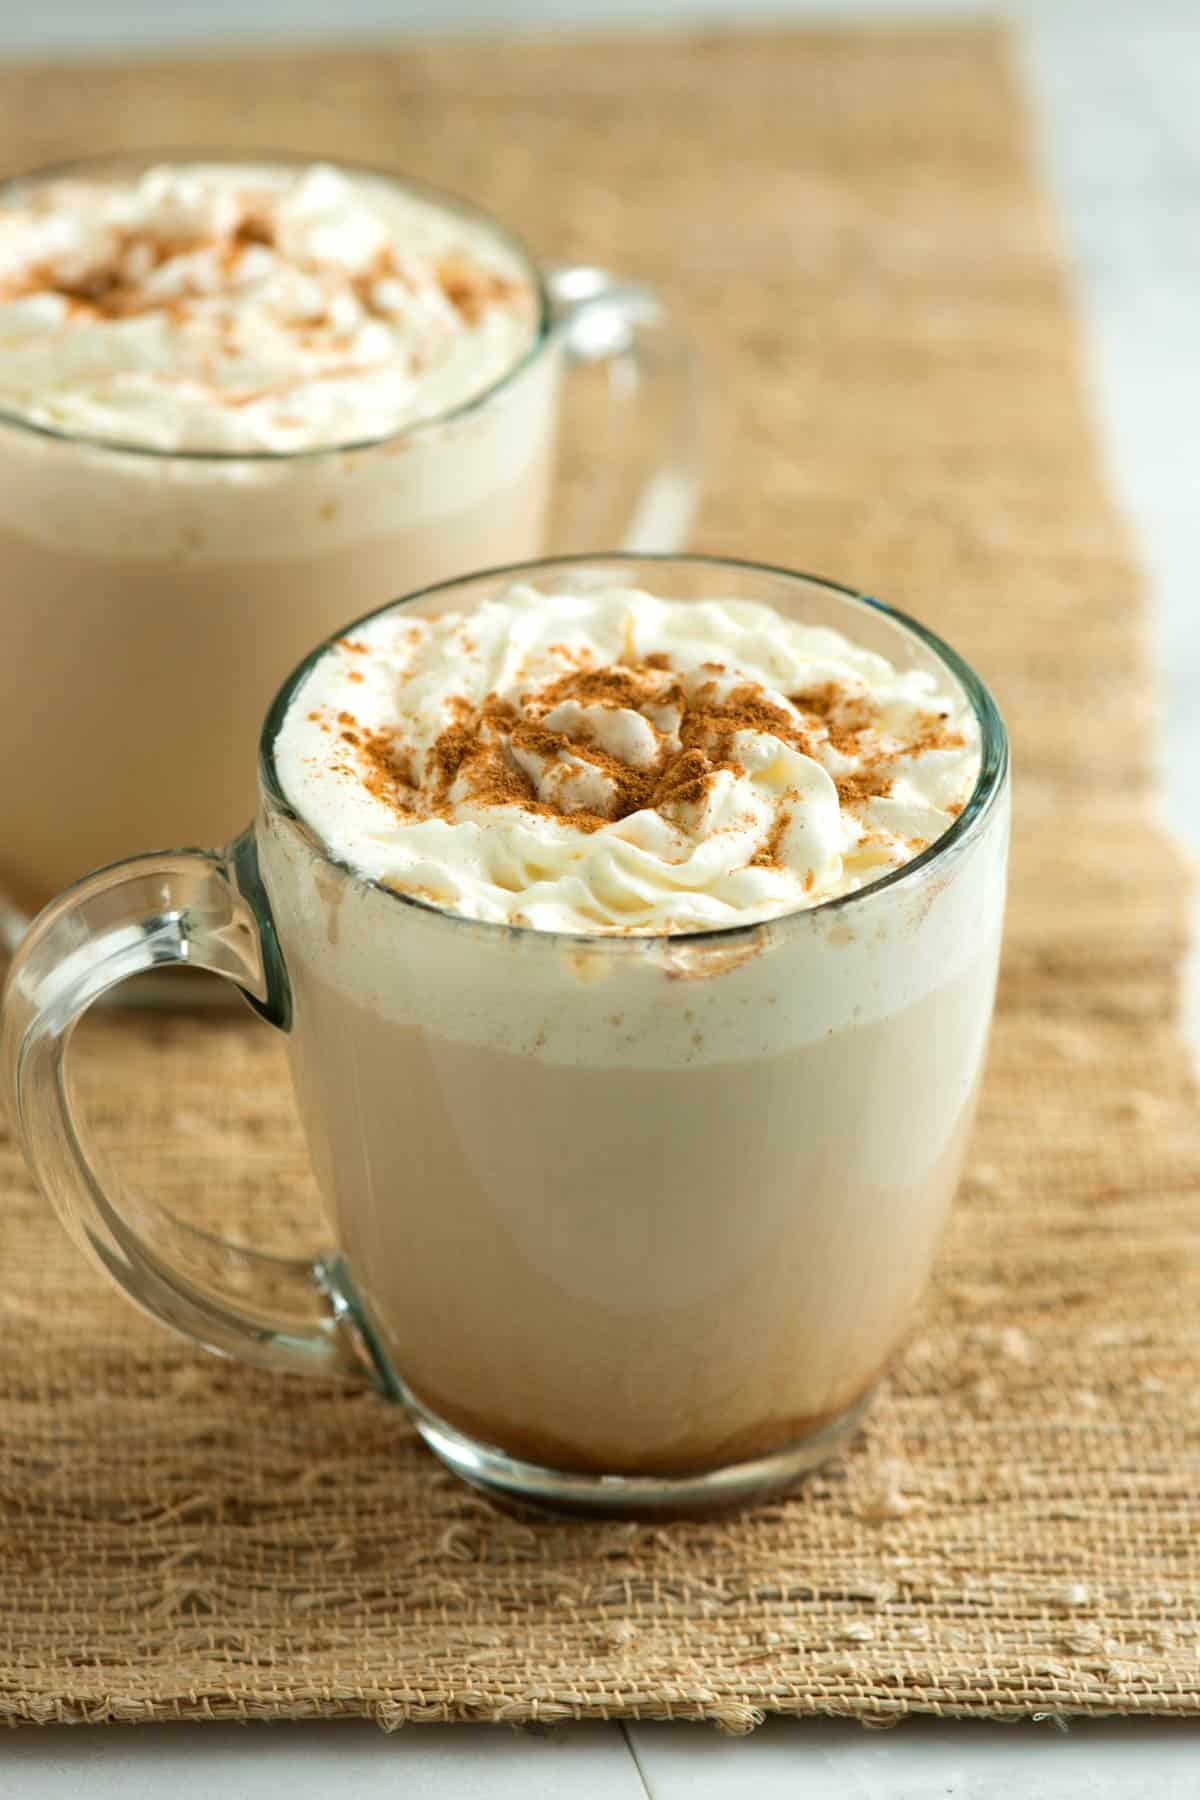 Homemade Pumpkin Spice Latte | Homemade Pumpkin Spice Latte Recipes You Need This Fall